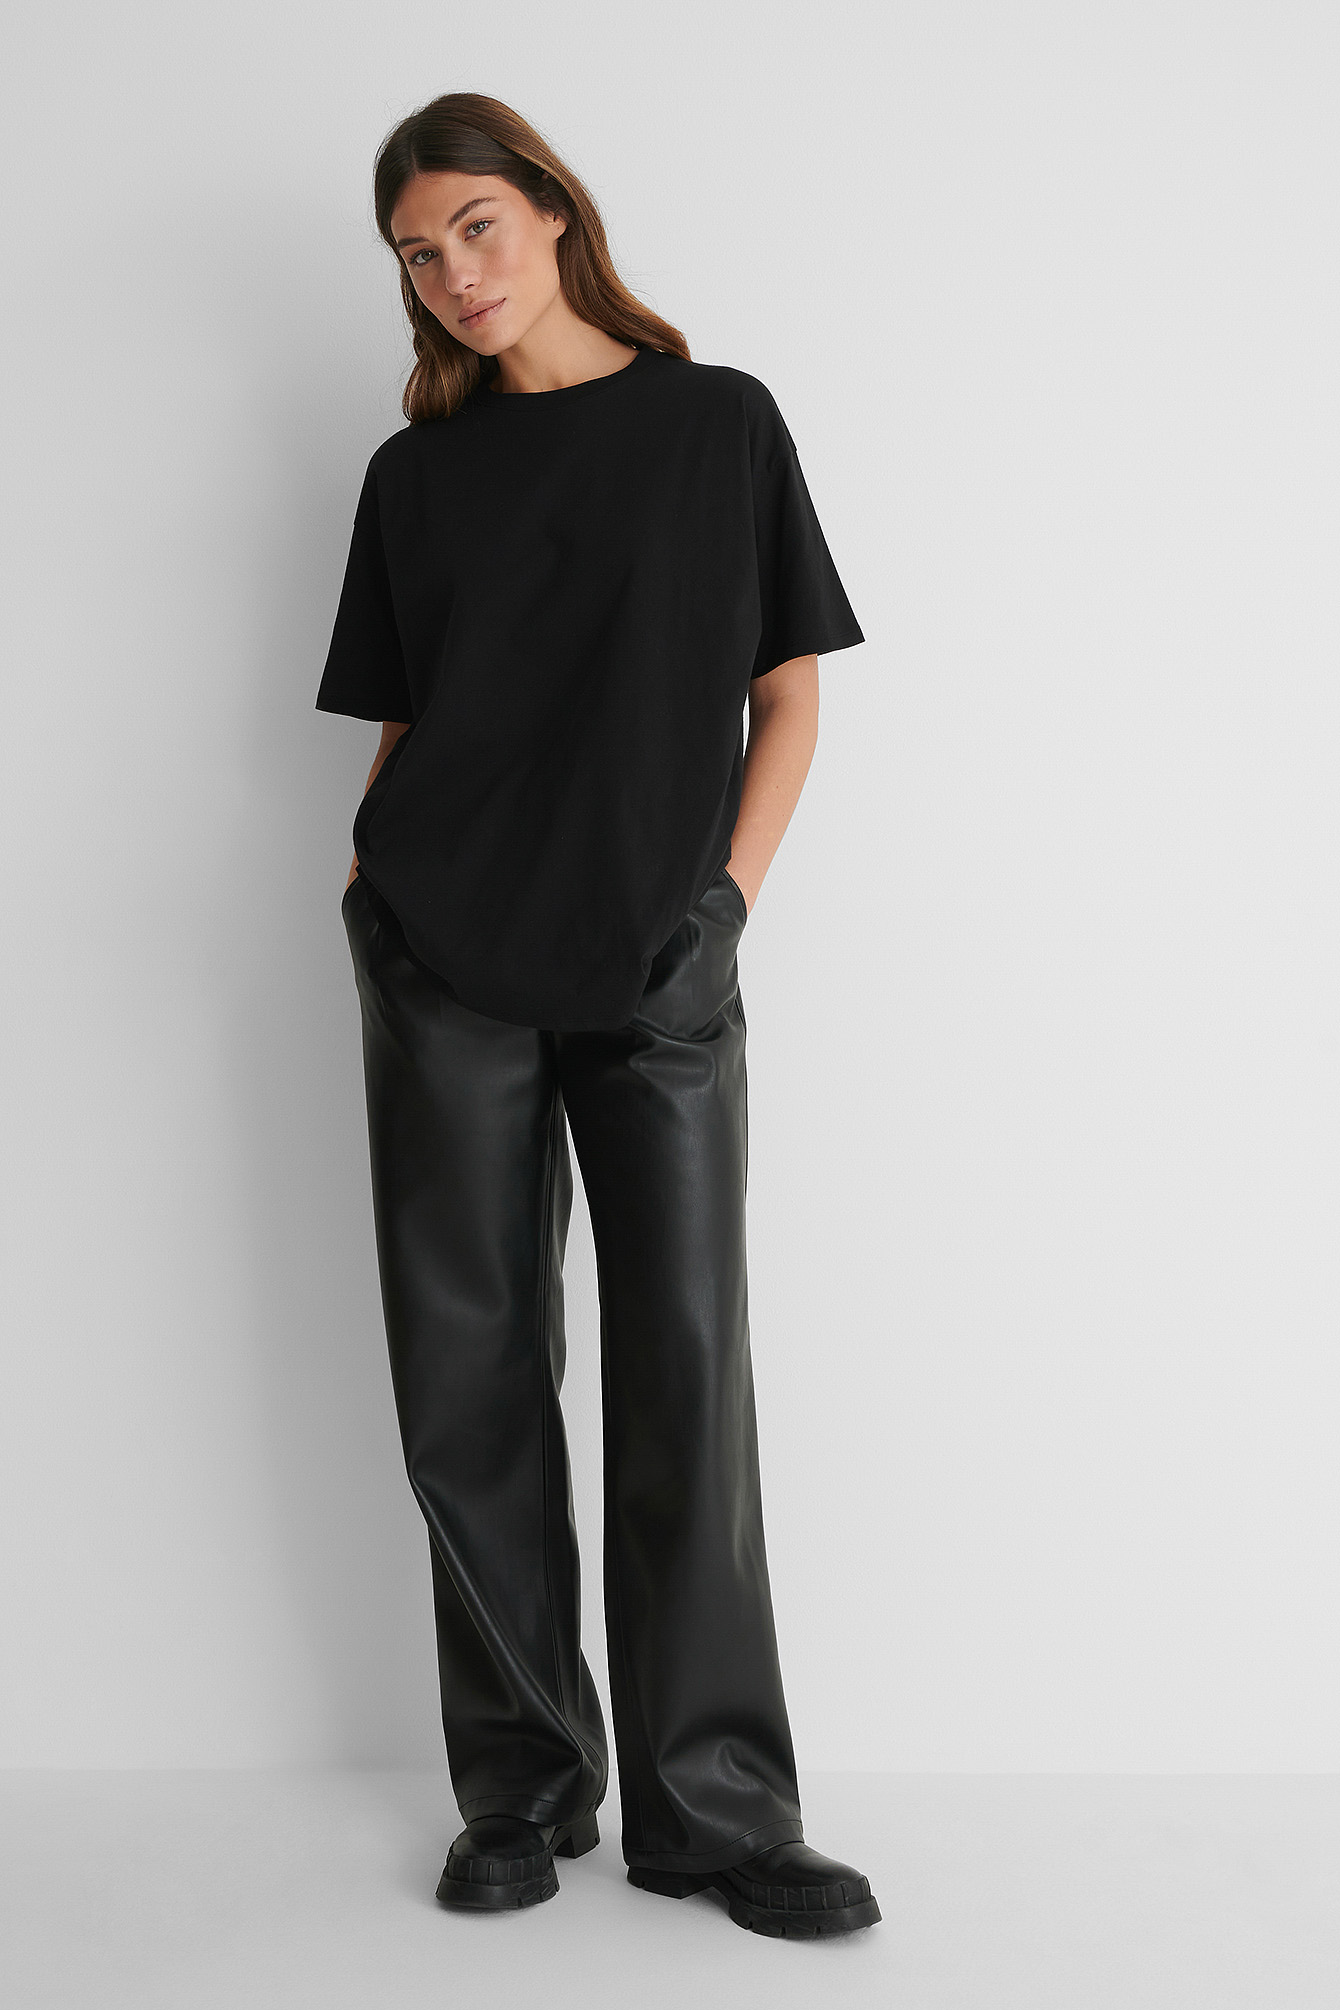 Black Organic Round Neck Oversized Tee